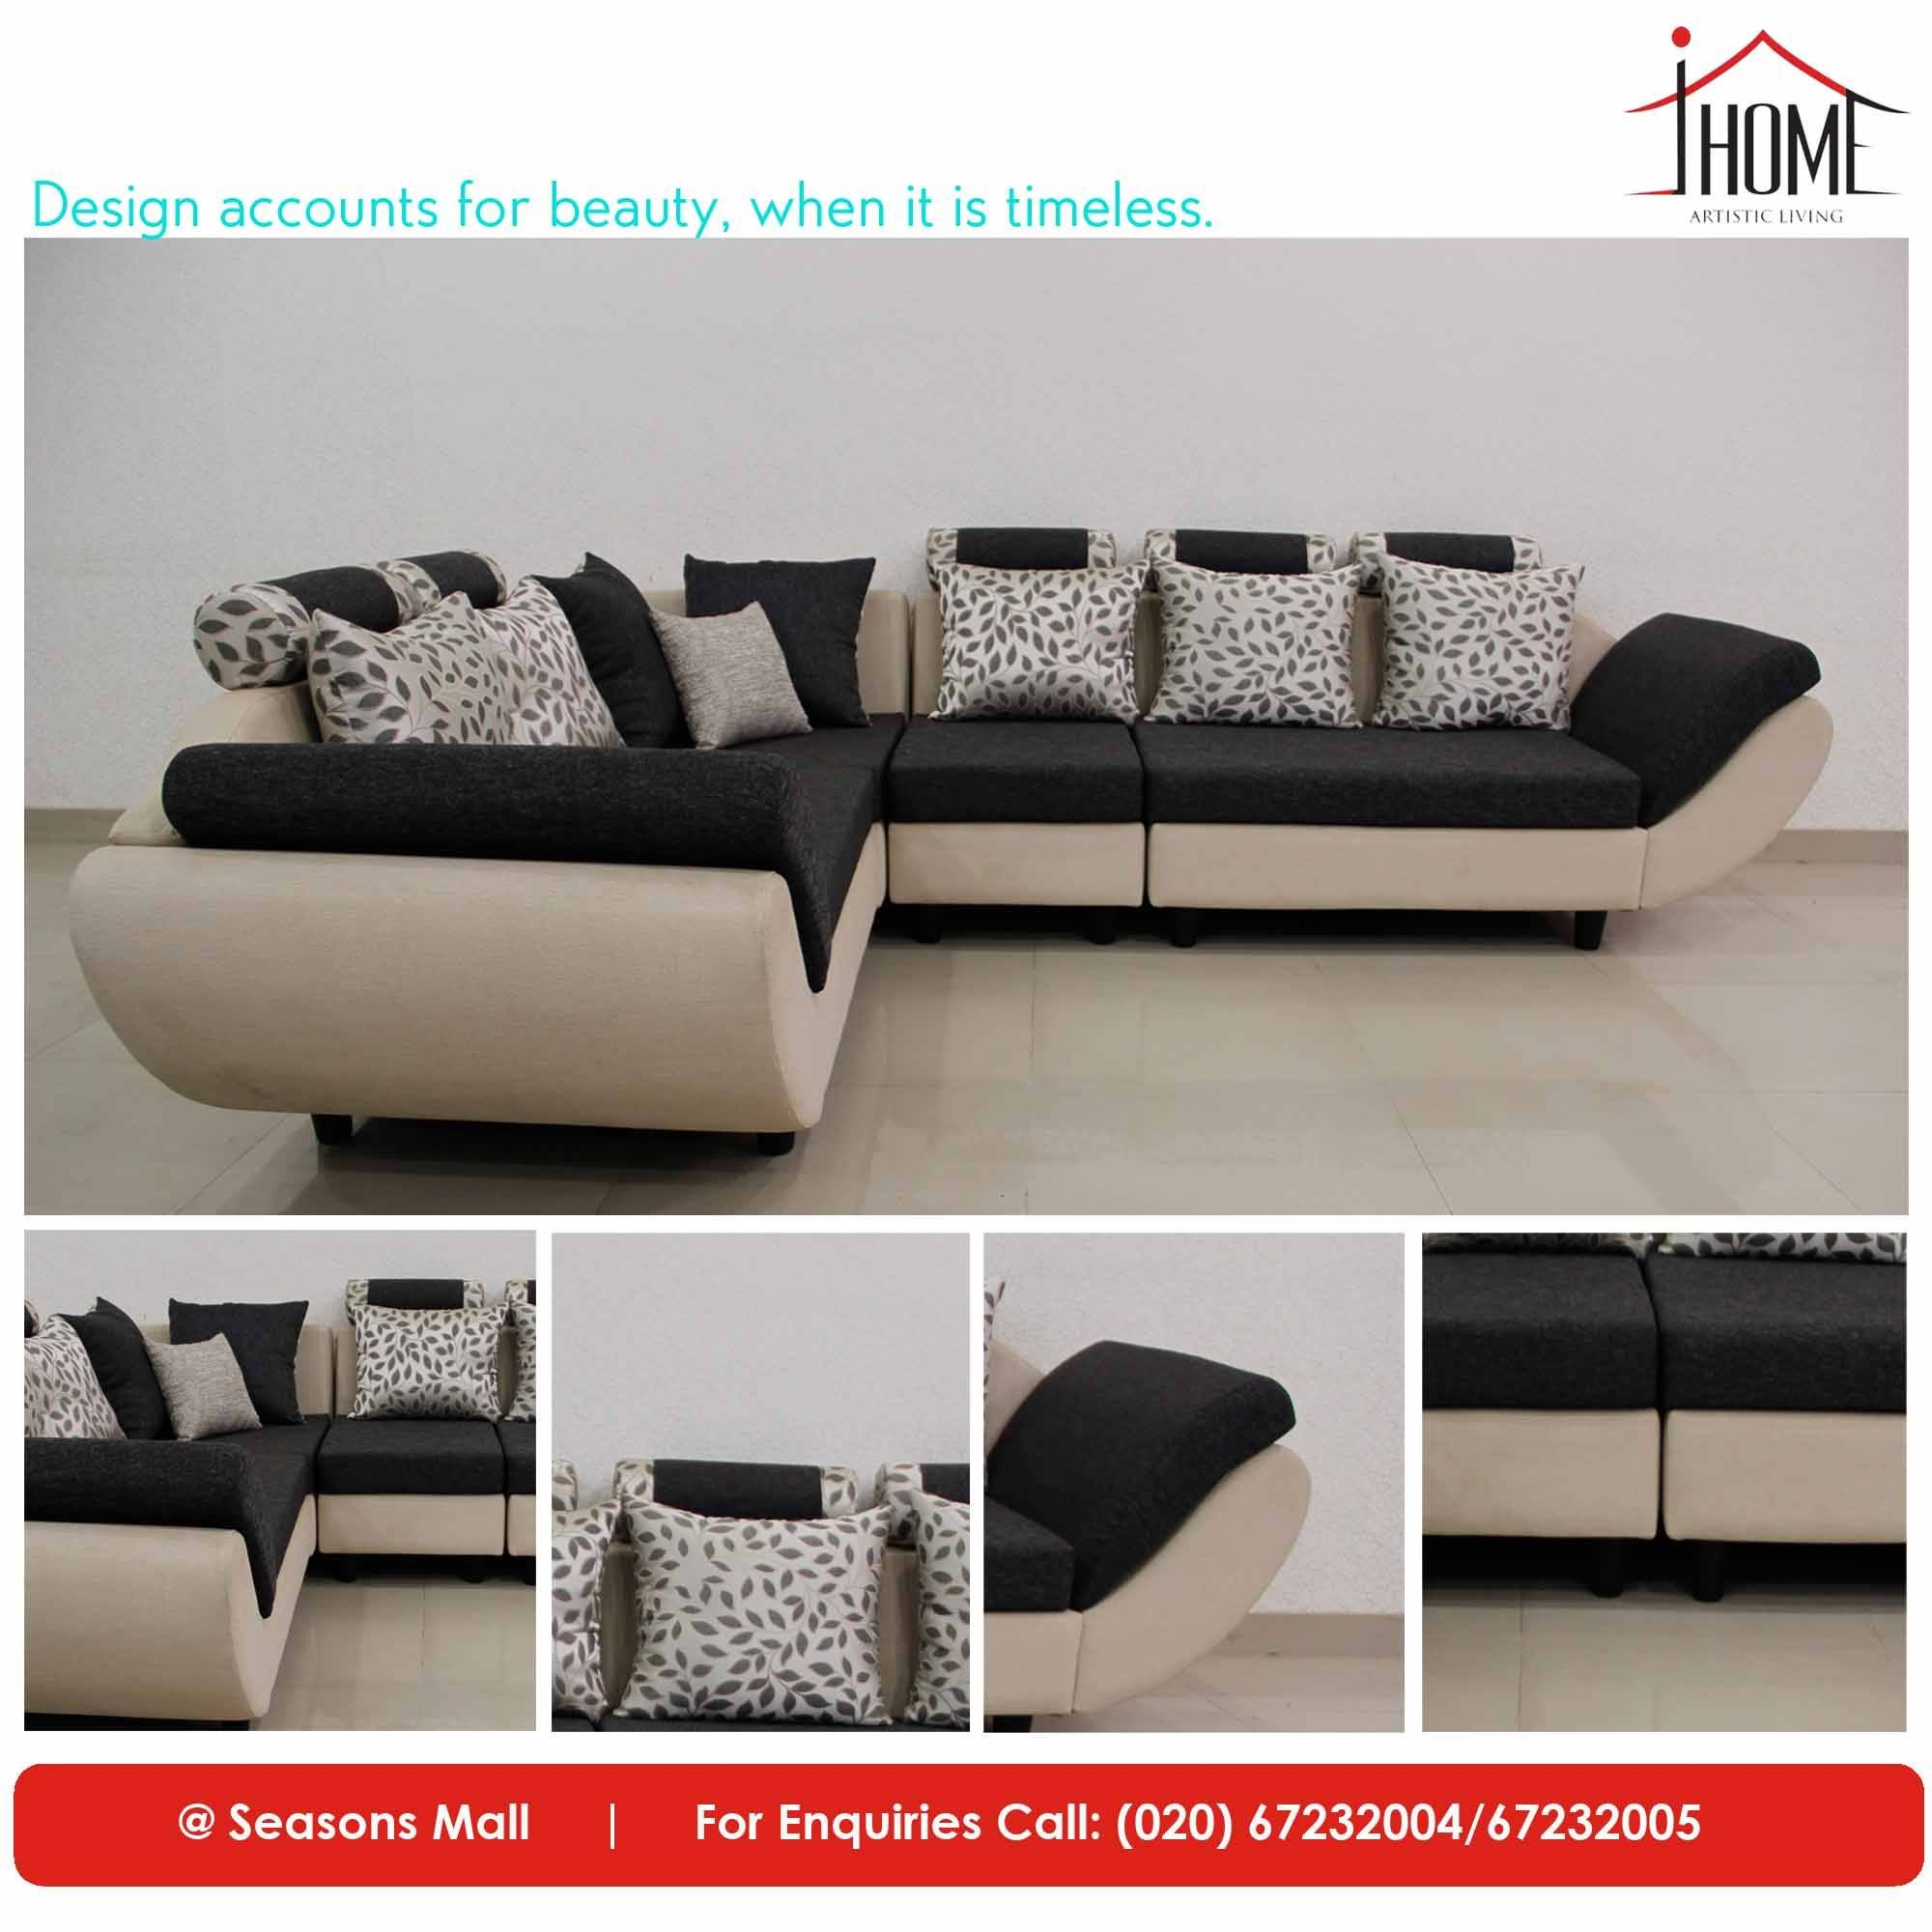 European Style Inspired Cream And Black Sectional Sofaset The